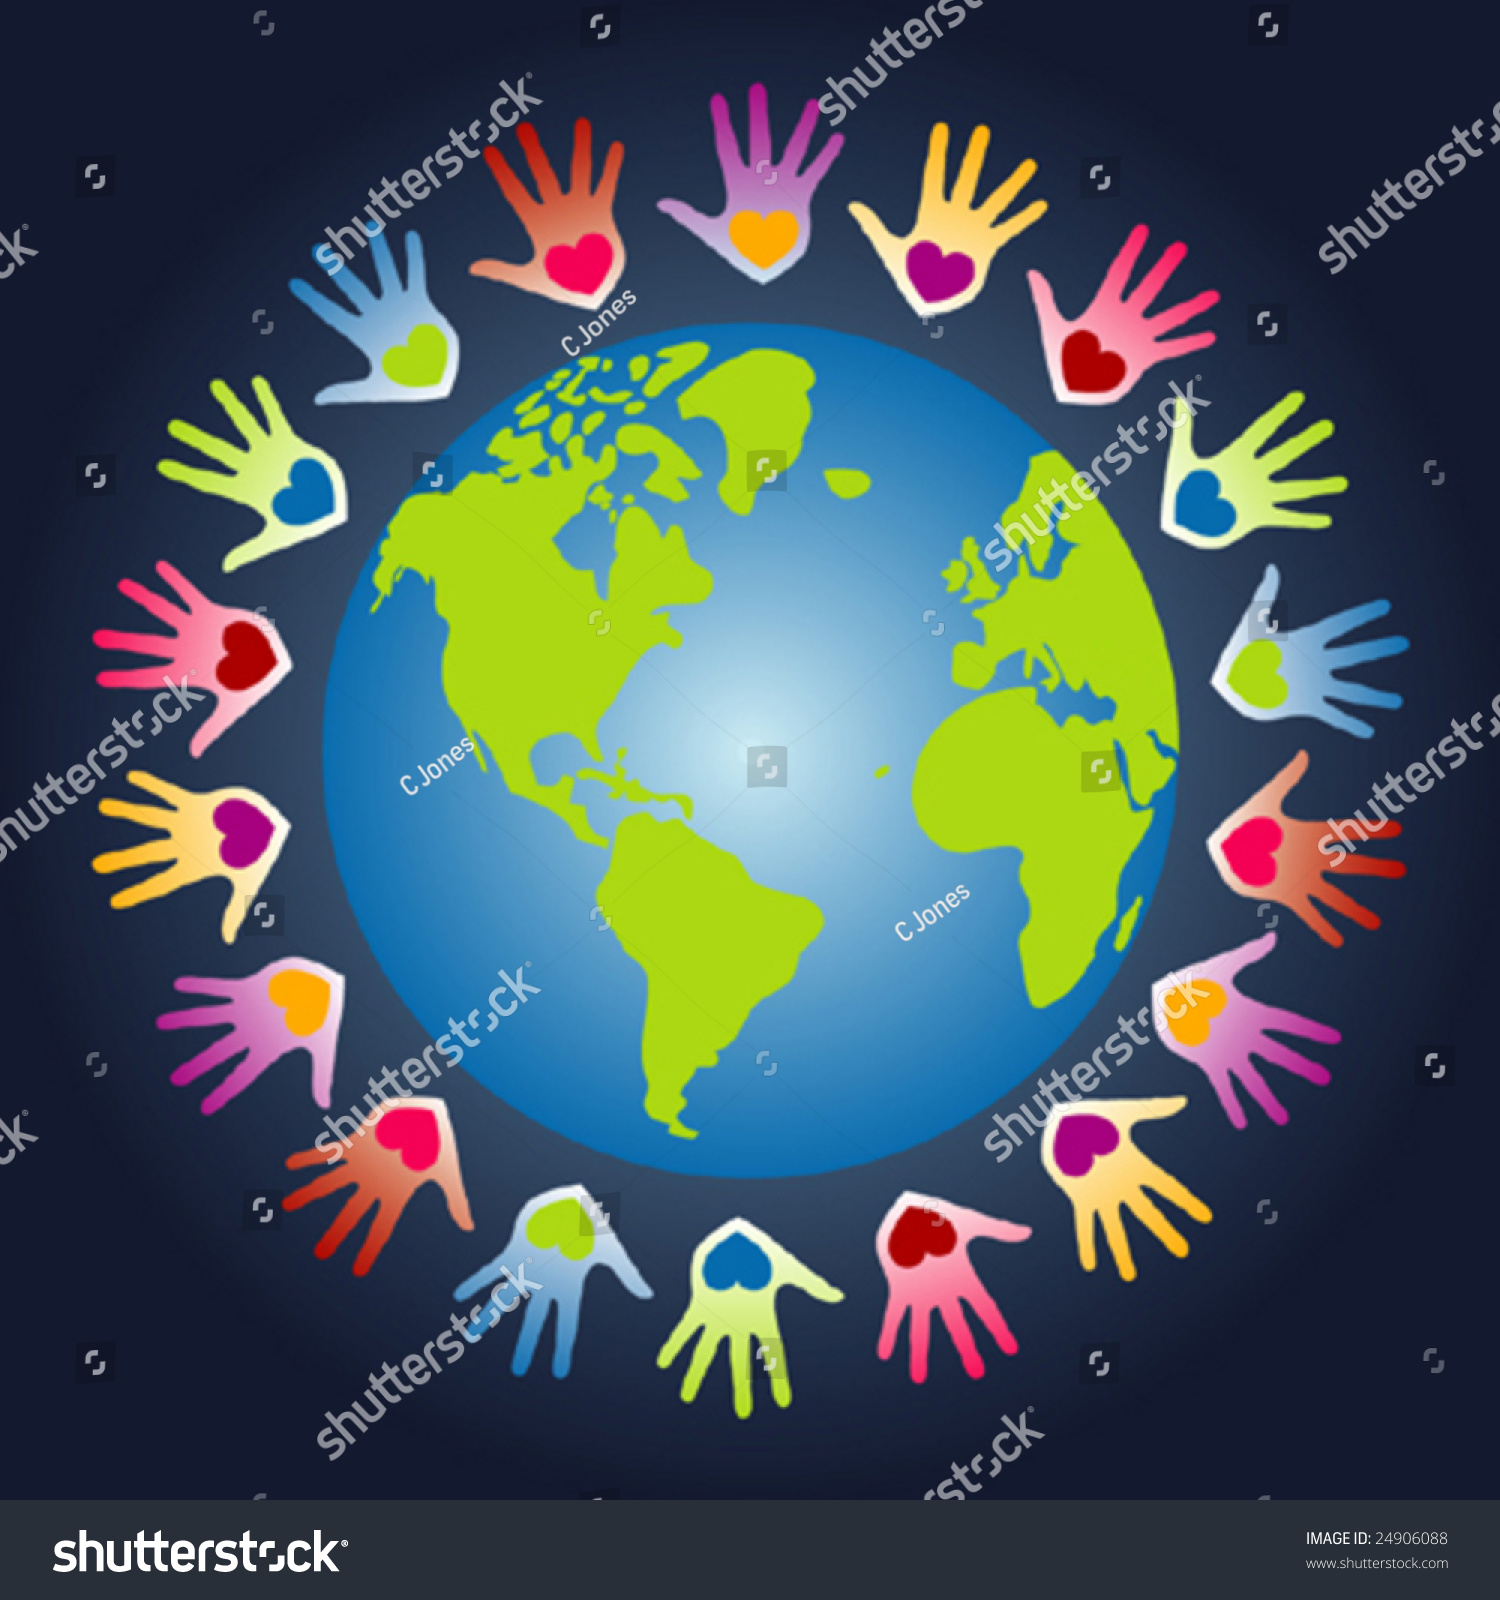 colorful world peace and unity vector 24906088